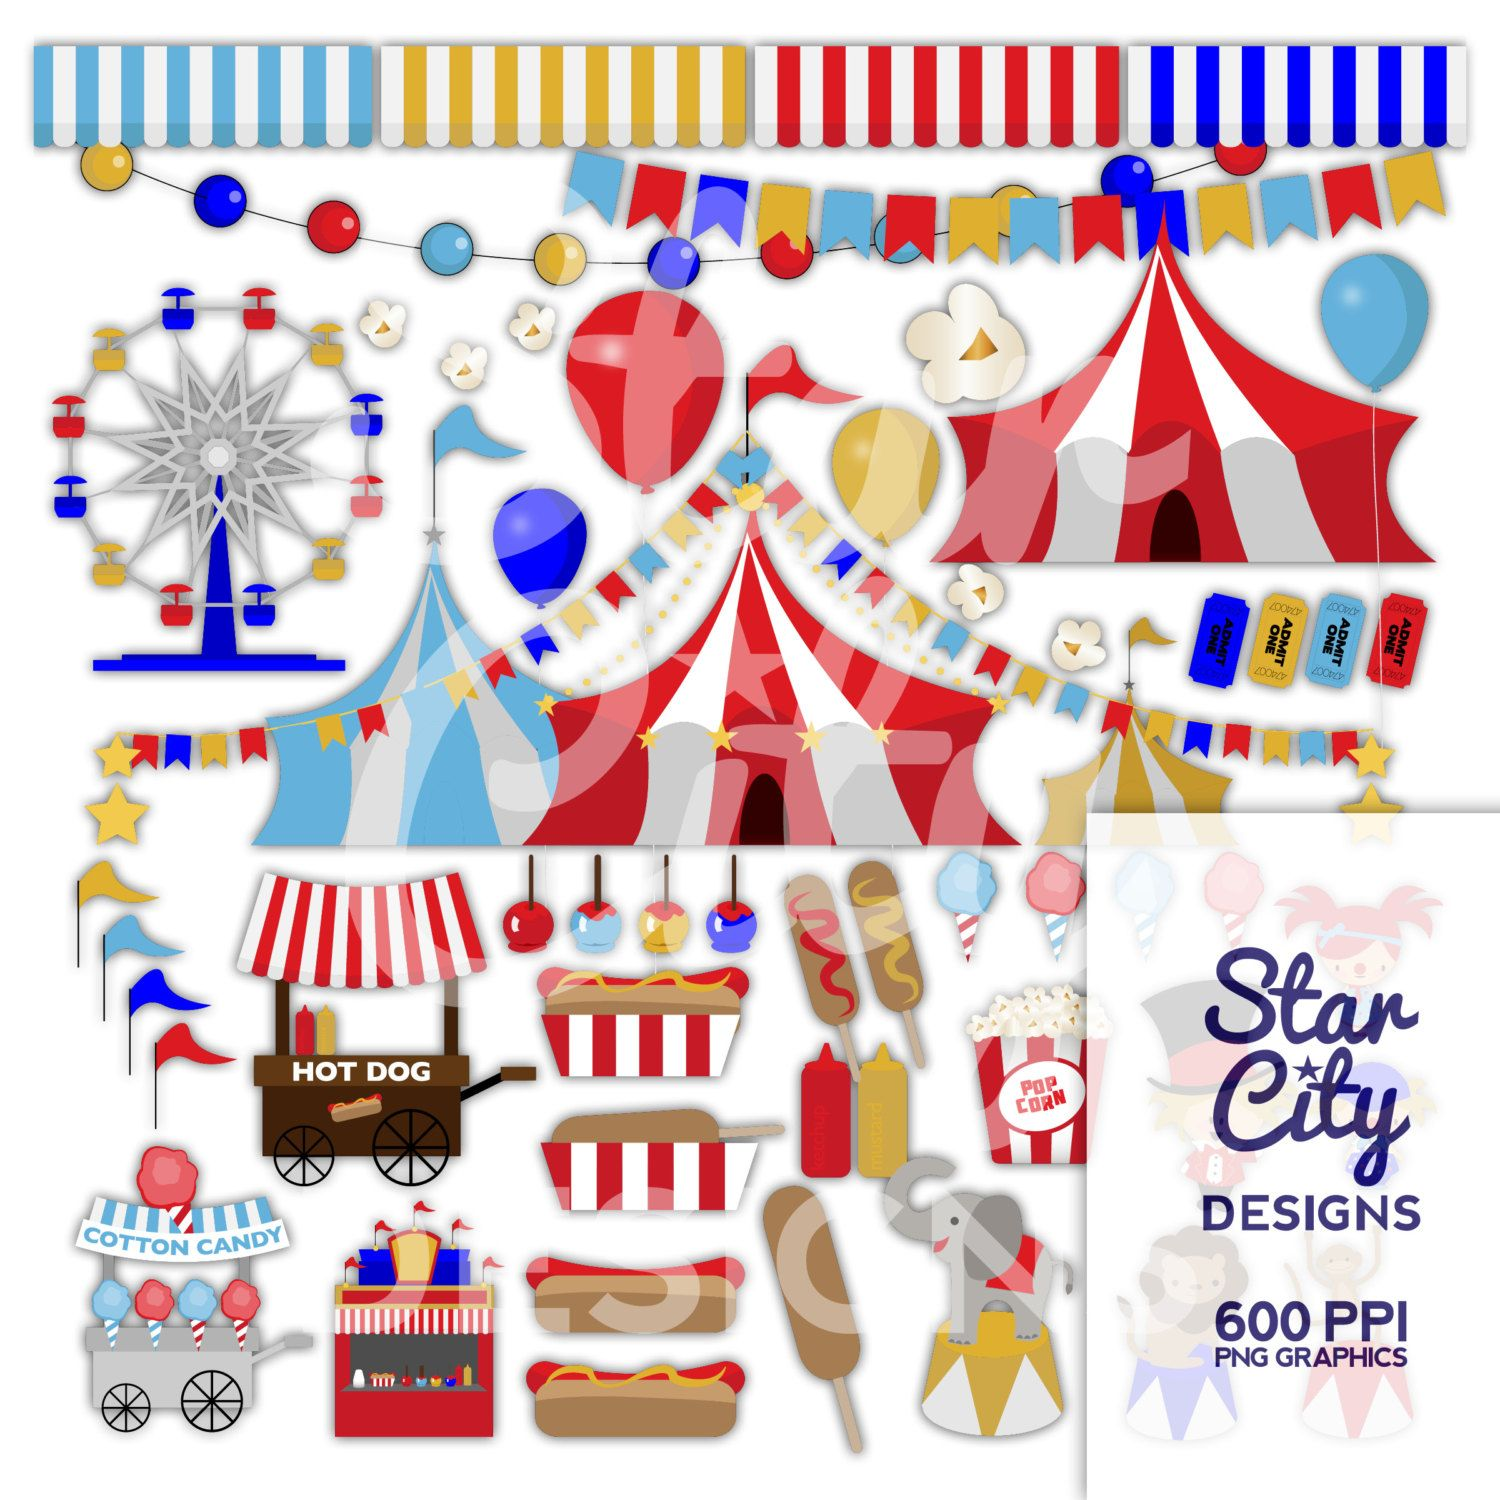 hight resolution of circus clipart carnival clipart big top clipart cotton candy clipart clipart clip art vector art vector graphics instant download pinned by